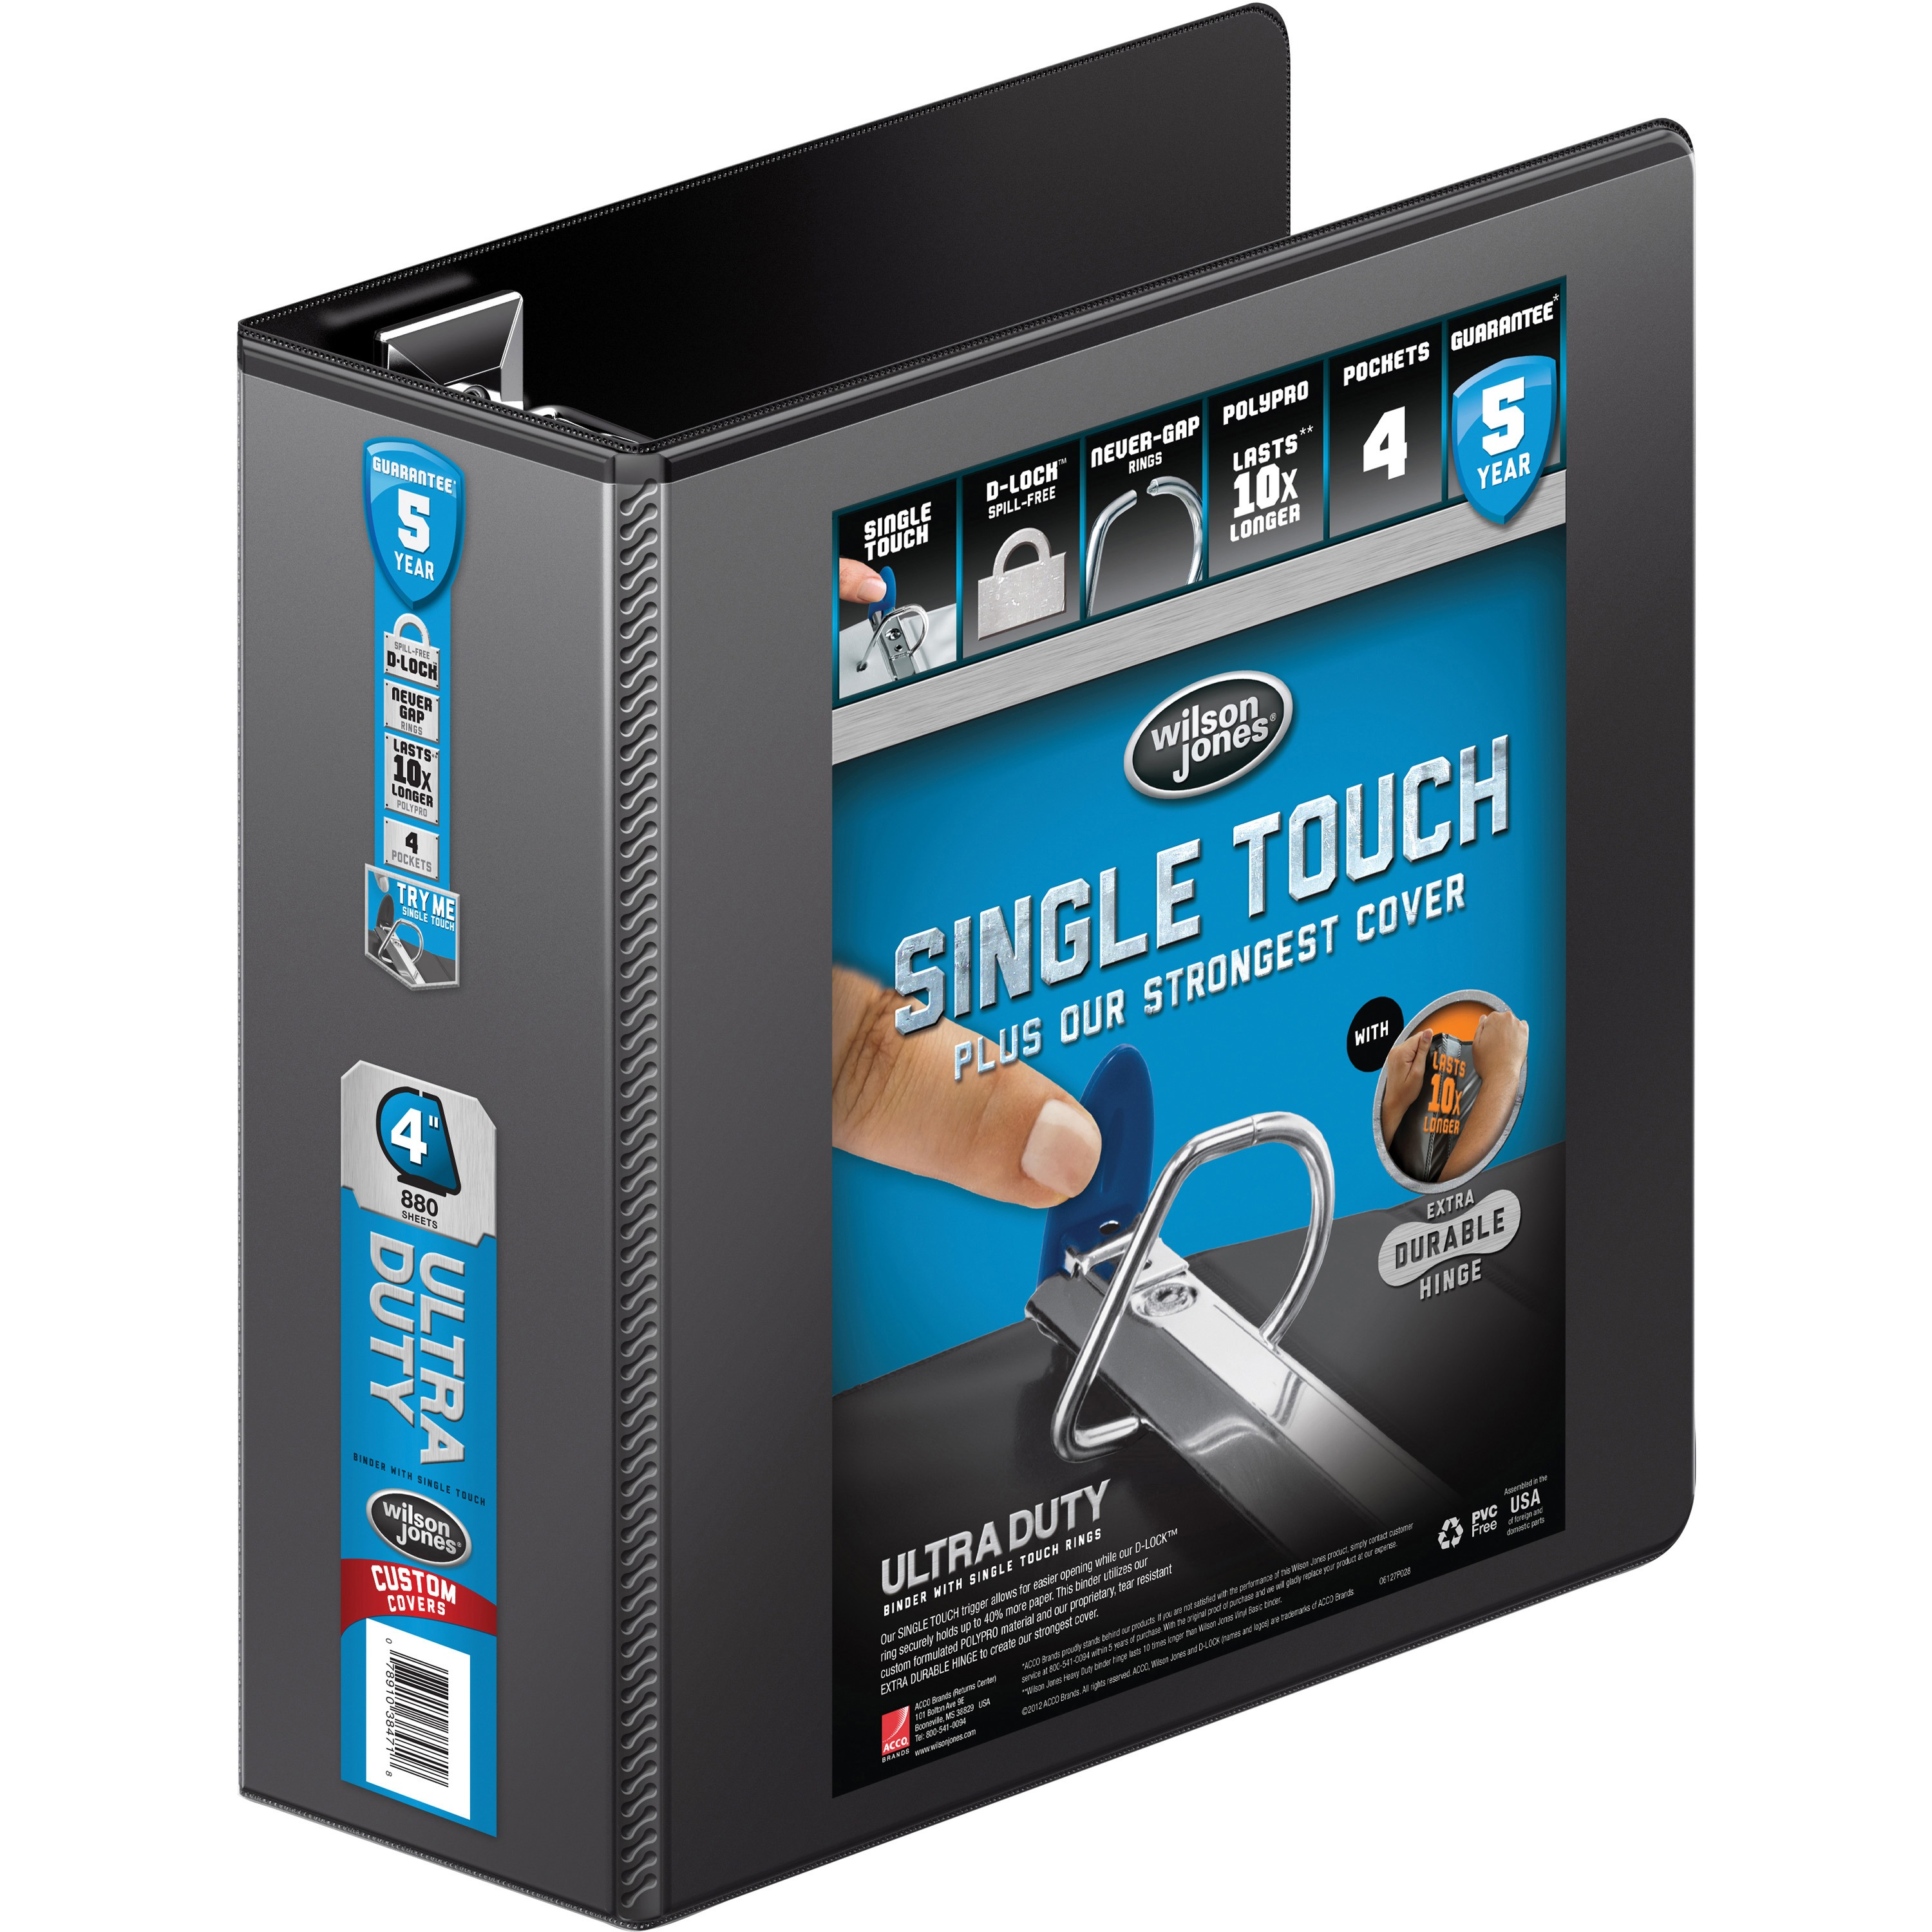 "Wilson Jones Ultra Duty D-Ring View Binder with Extra Durable Hinge, 4"", Black"